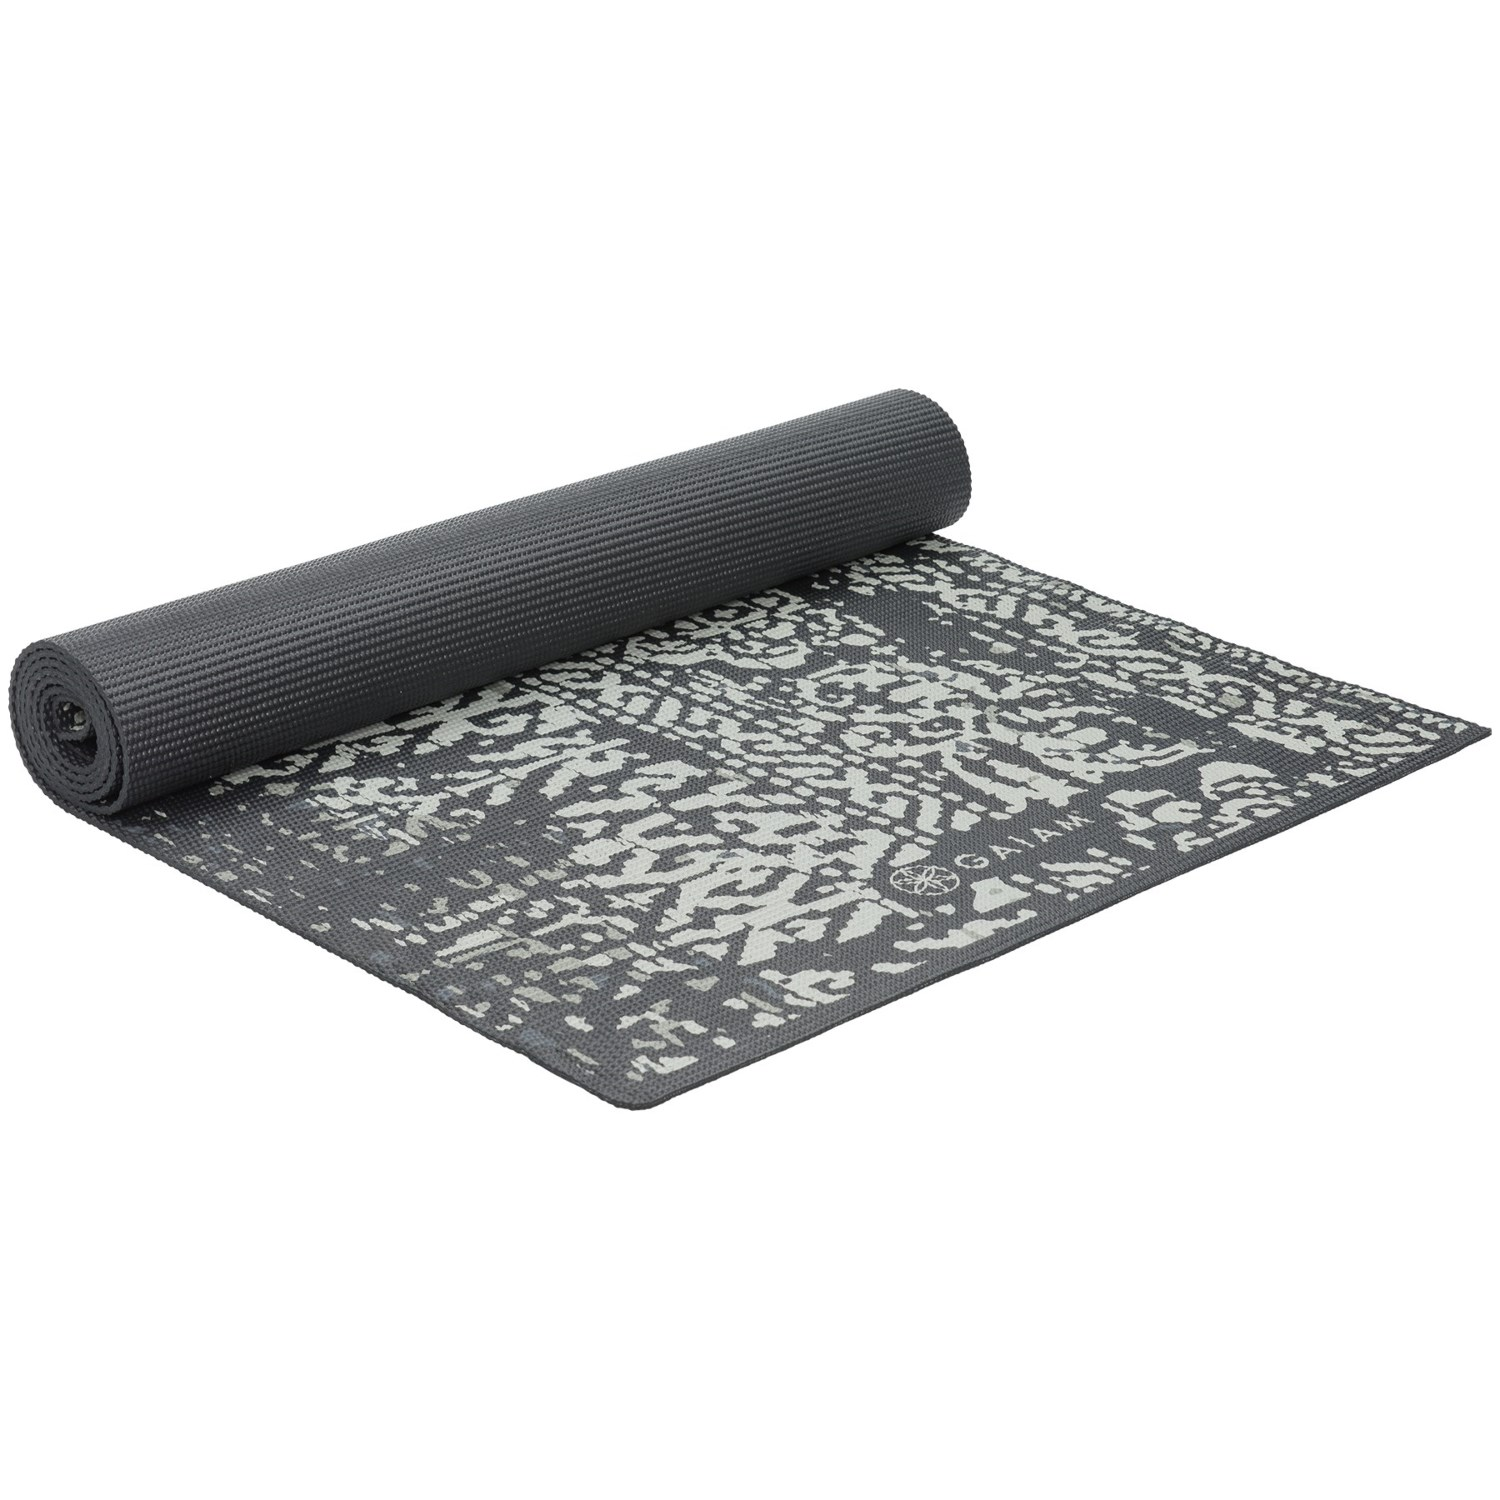 vagabond towel goods microfiber mats towels printed mat yoga collections